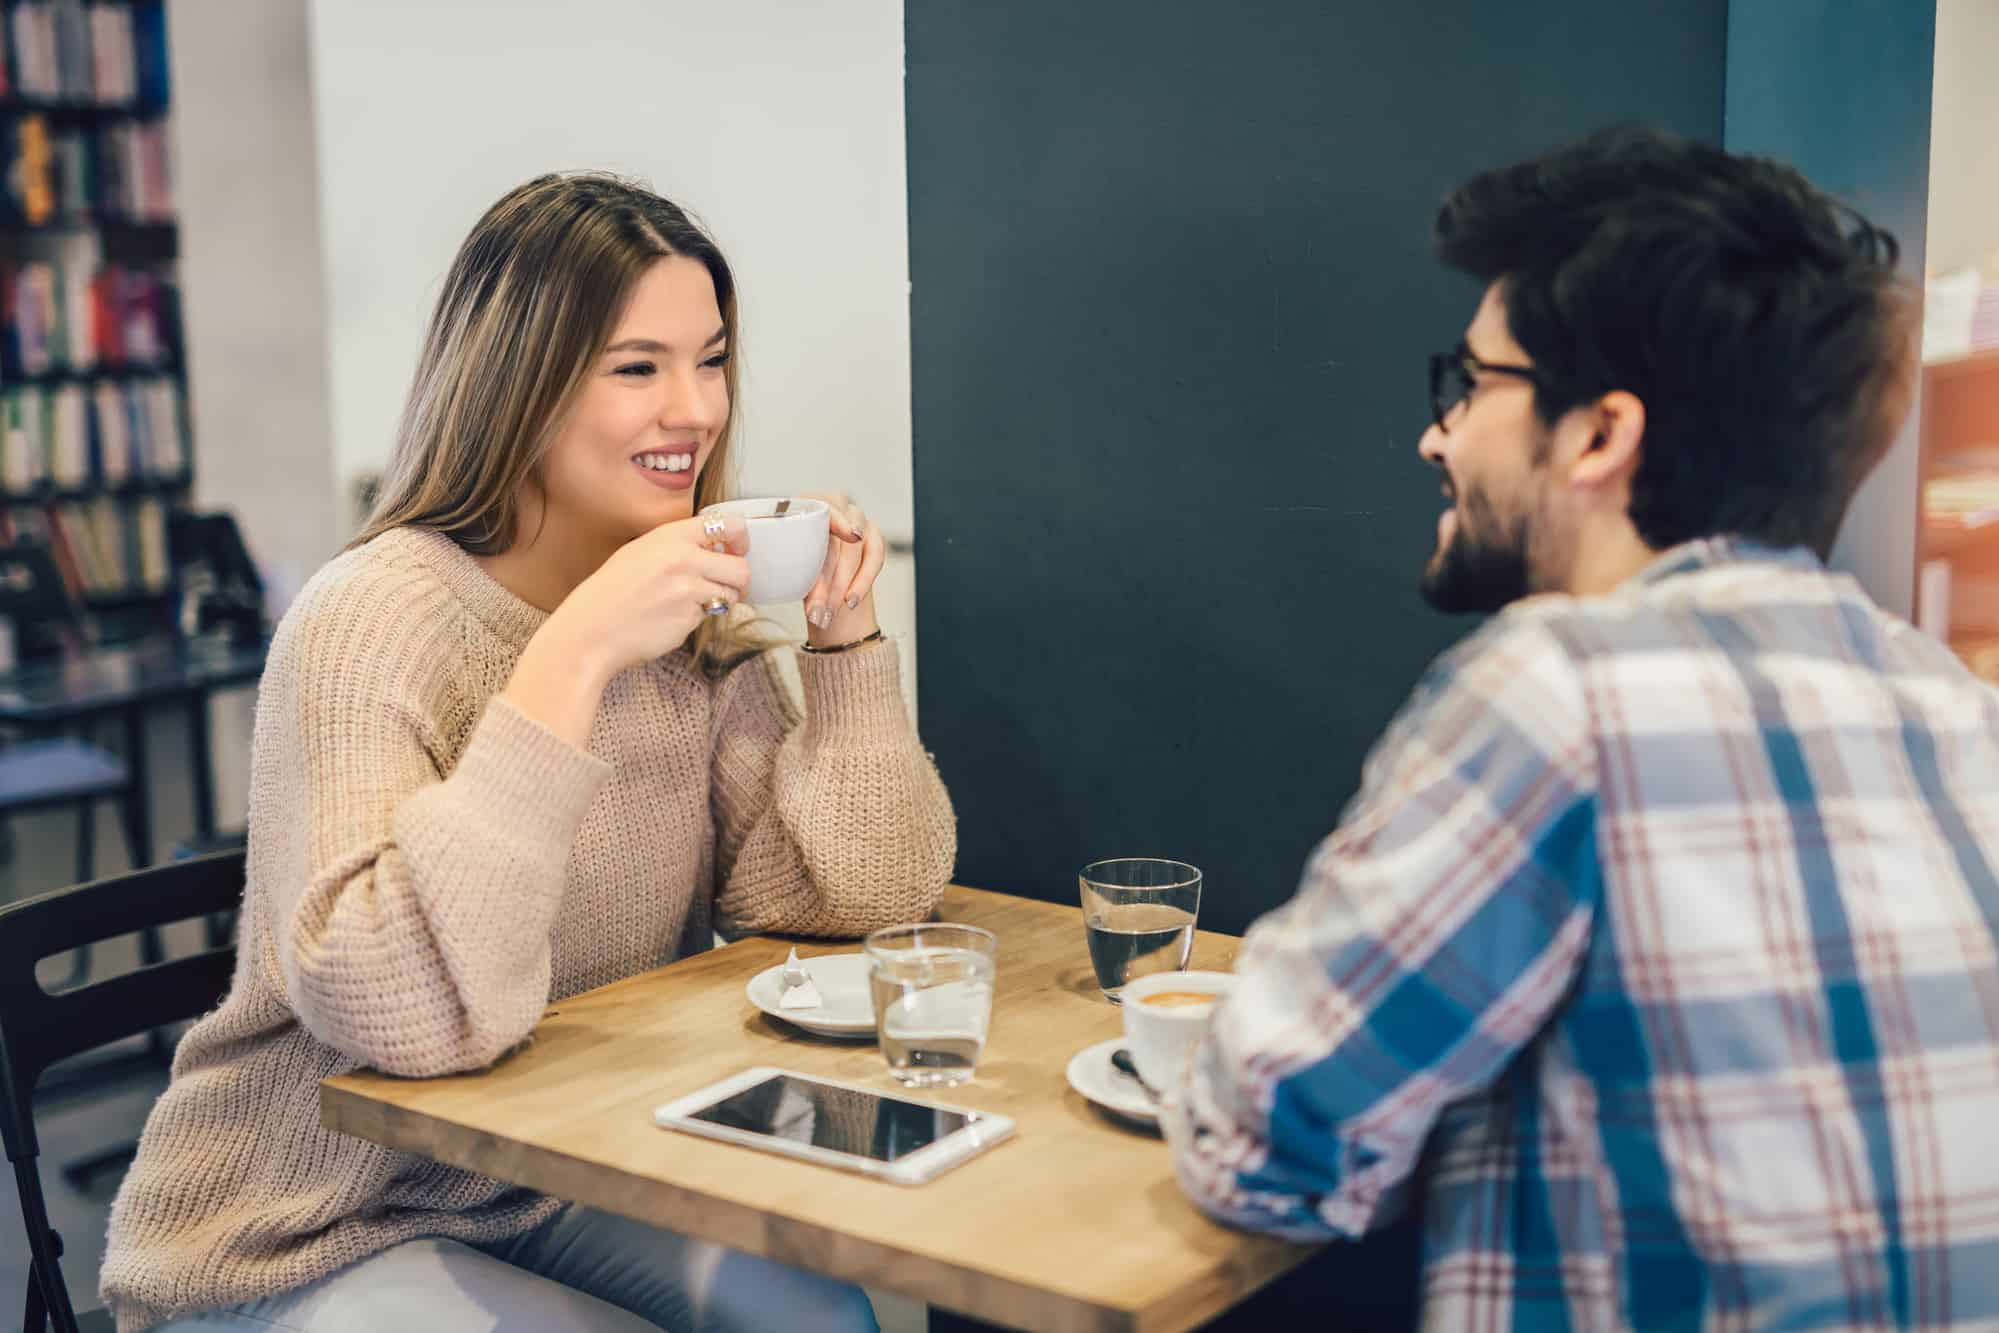 How To Know Someone Likes You Secretly (31 Interesting